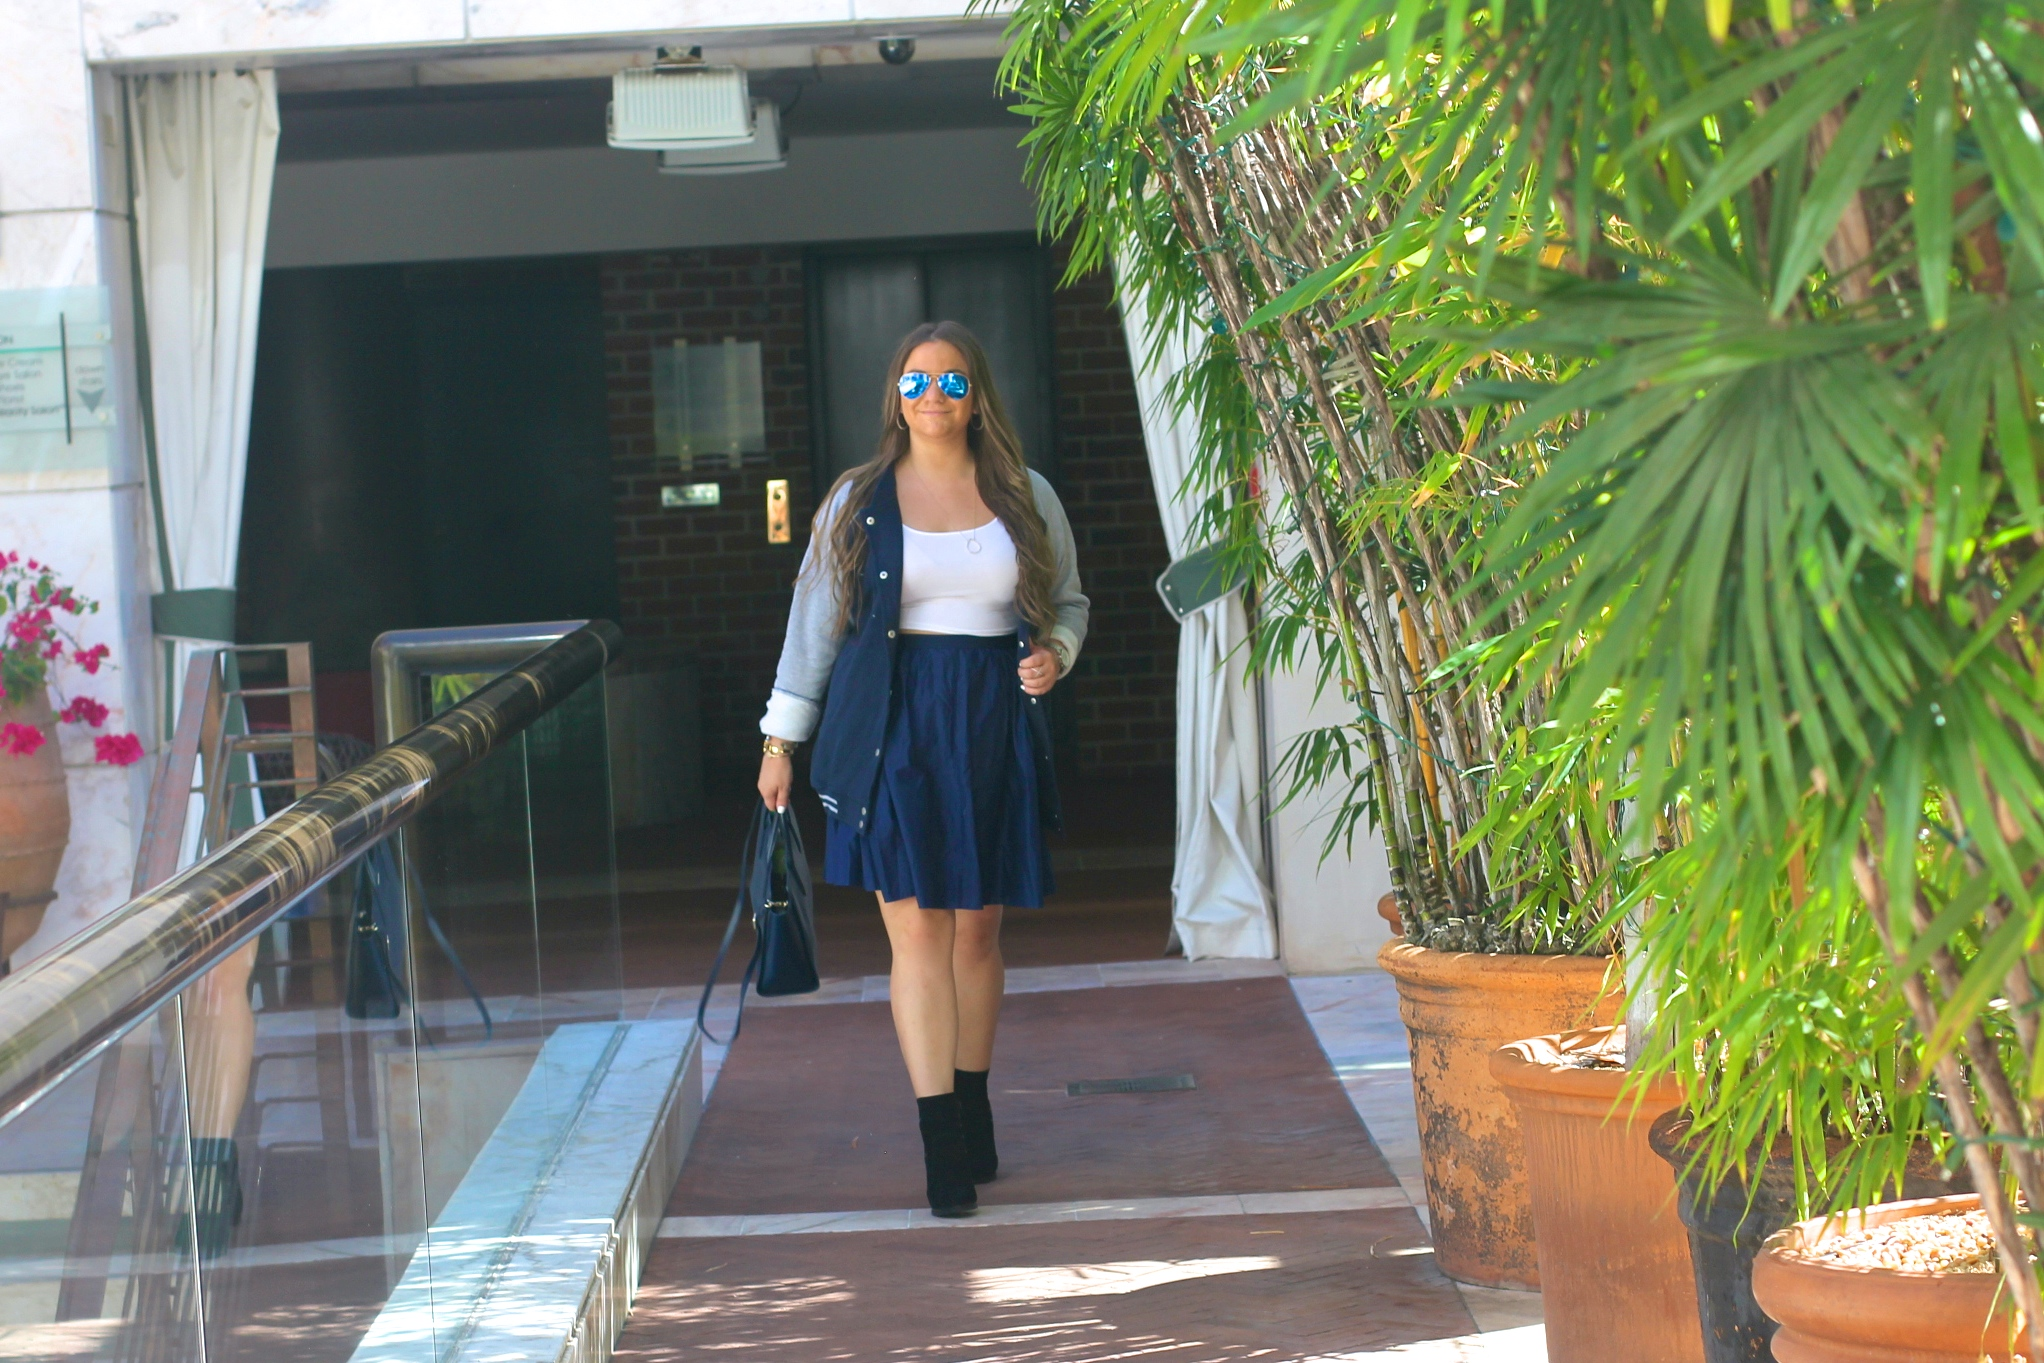 missyonmadison, melissa tierney, navy skirt, navy bomber jacket, navy satchel, lacoste satchel, white crop top, ray bans, mirrored aviators, navy idi skirt, uniqlo skirt, shoedazzle booties, black ankle booties, black booties, fall style, fall fashion, fashion blogger, bomber jacket,